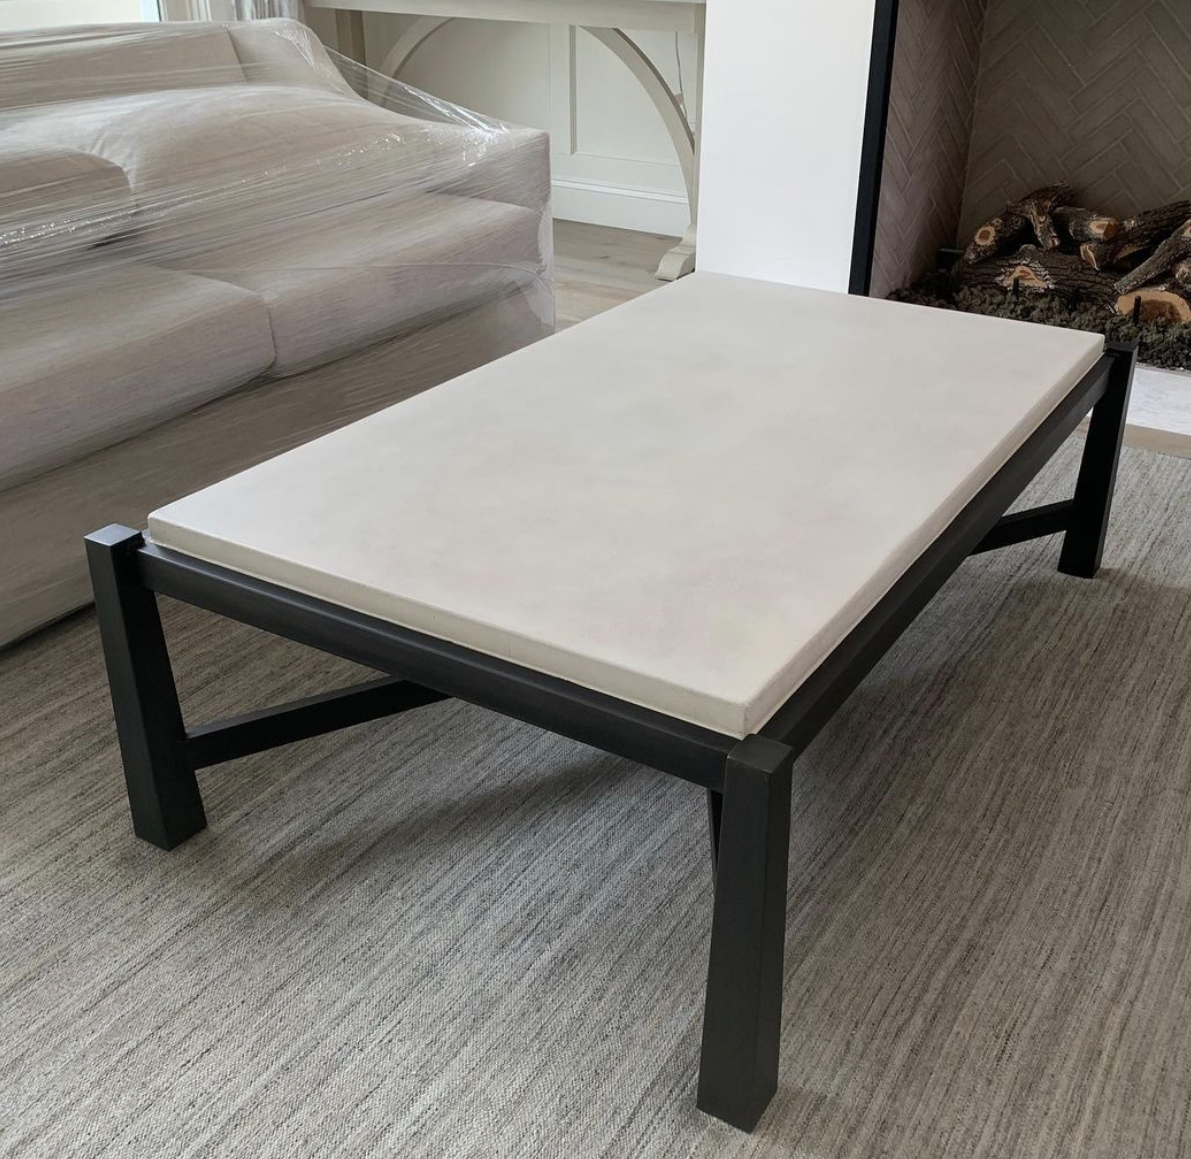 white concrete and black metal coffee table